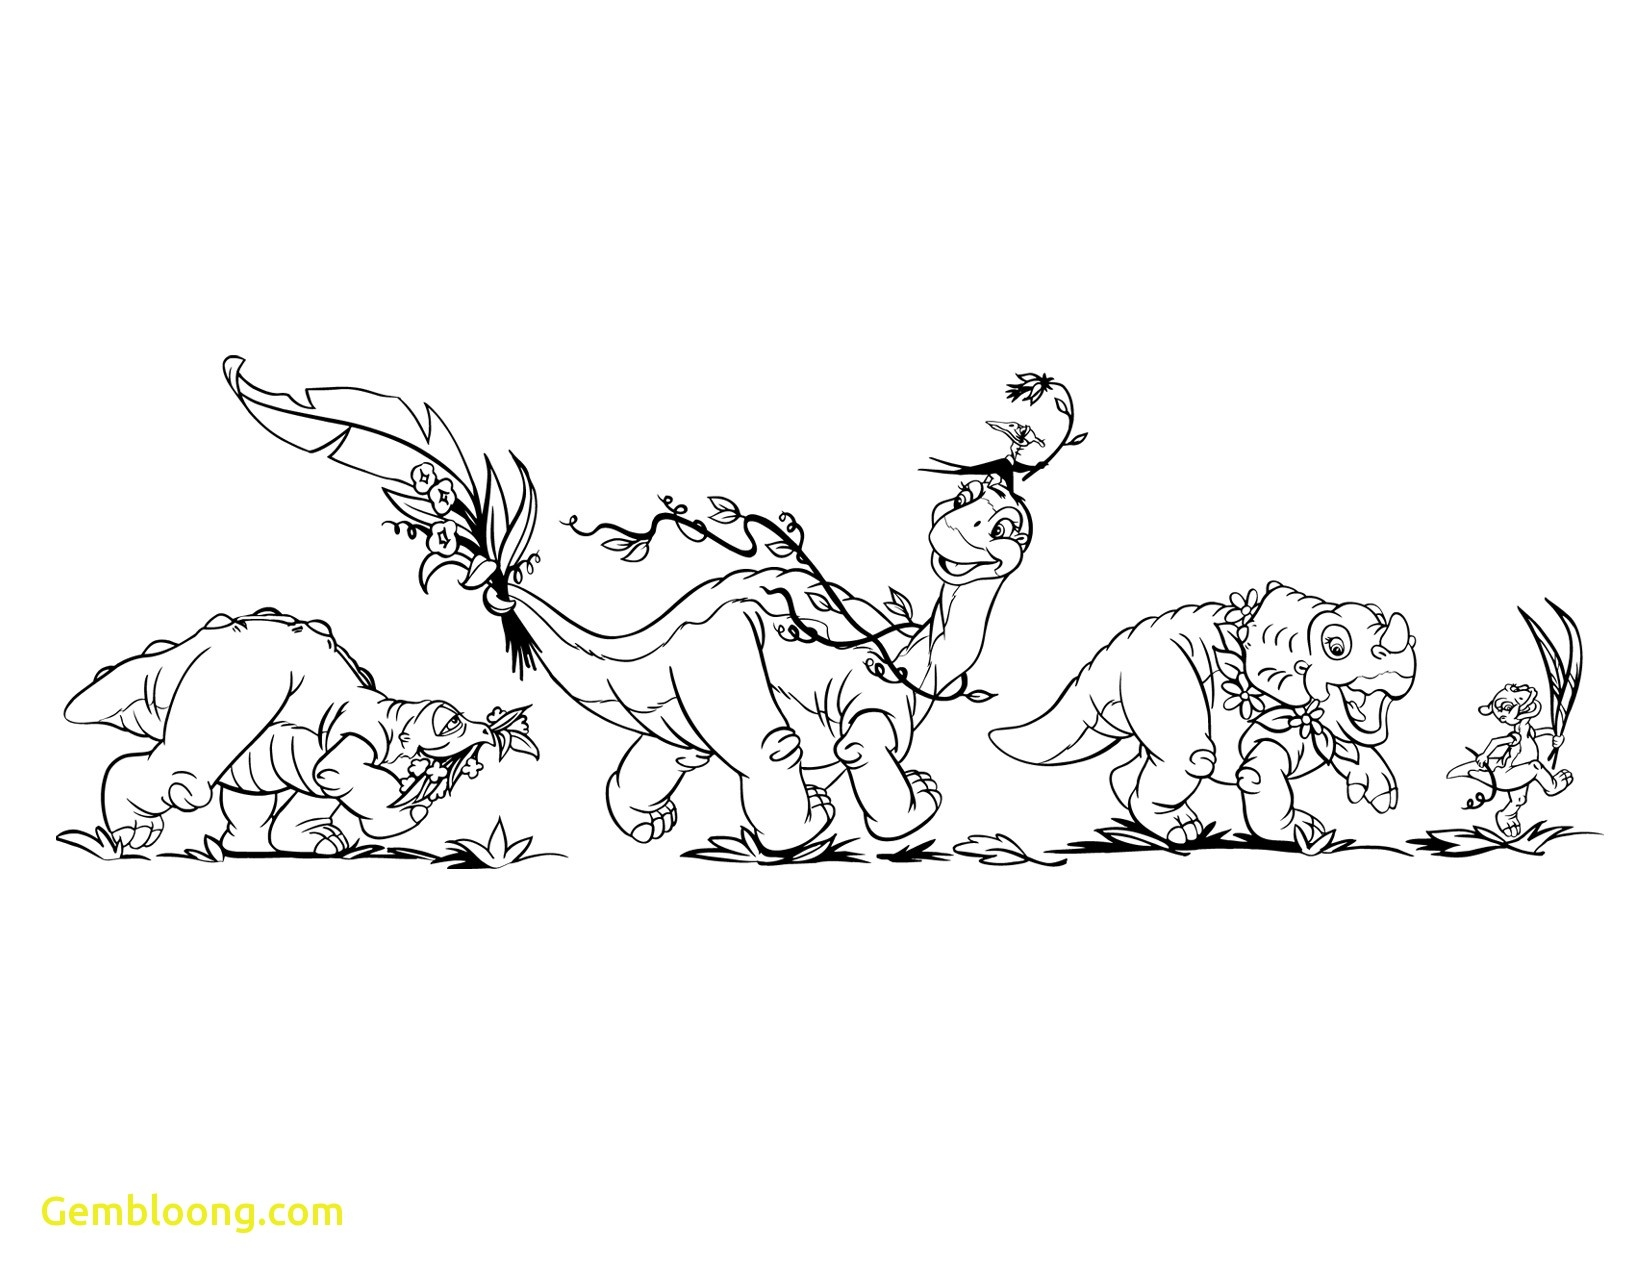 Land Before Time Dinosaur Ducky Coloring Page